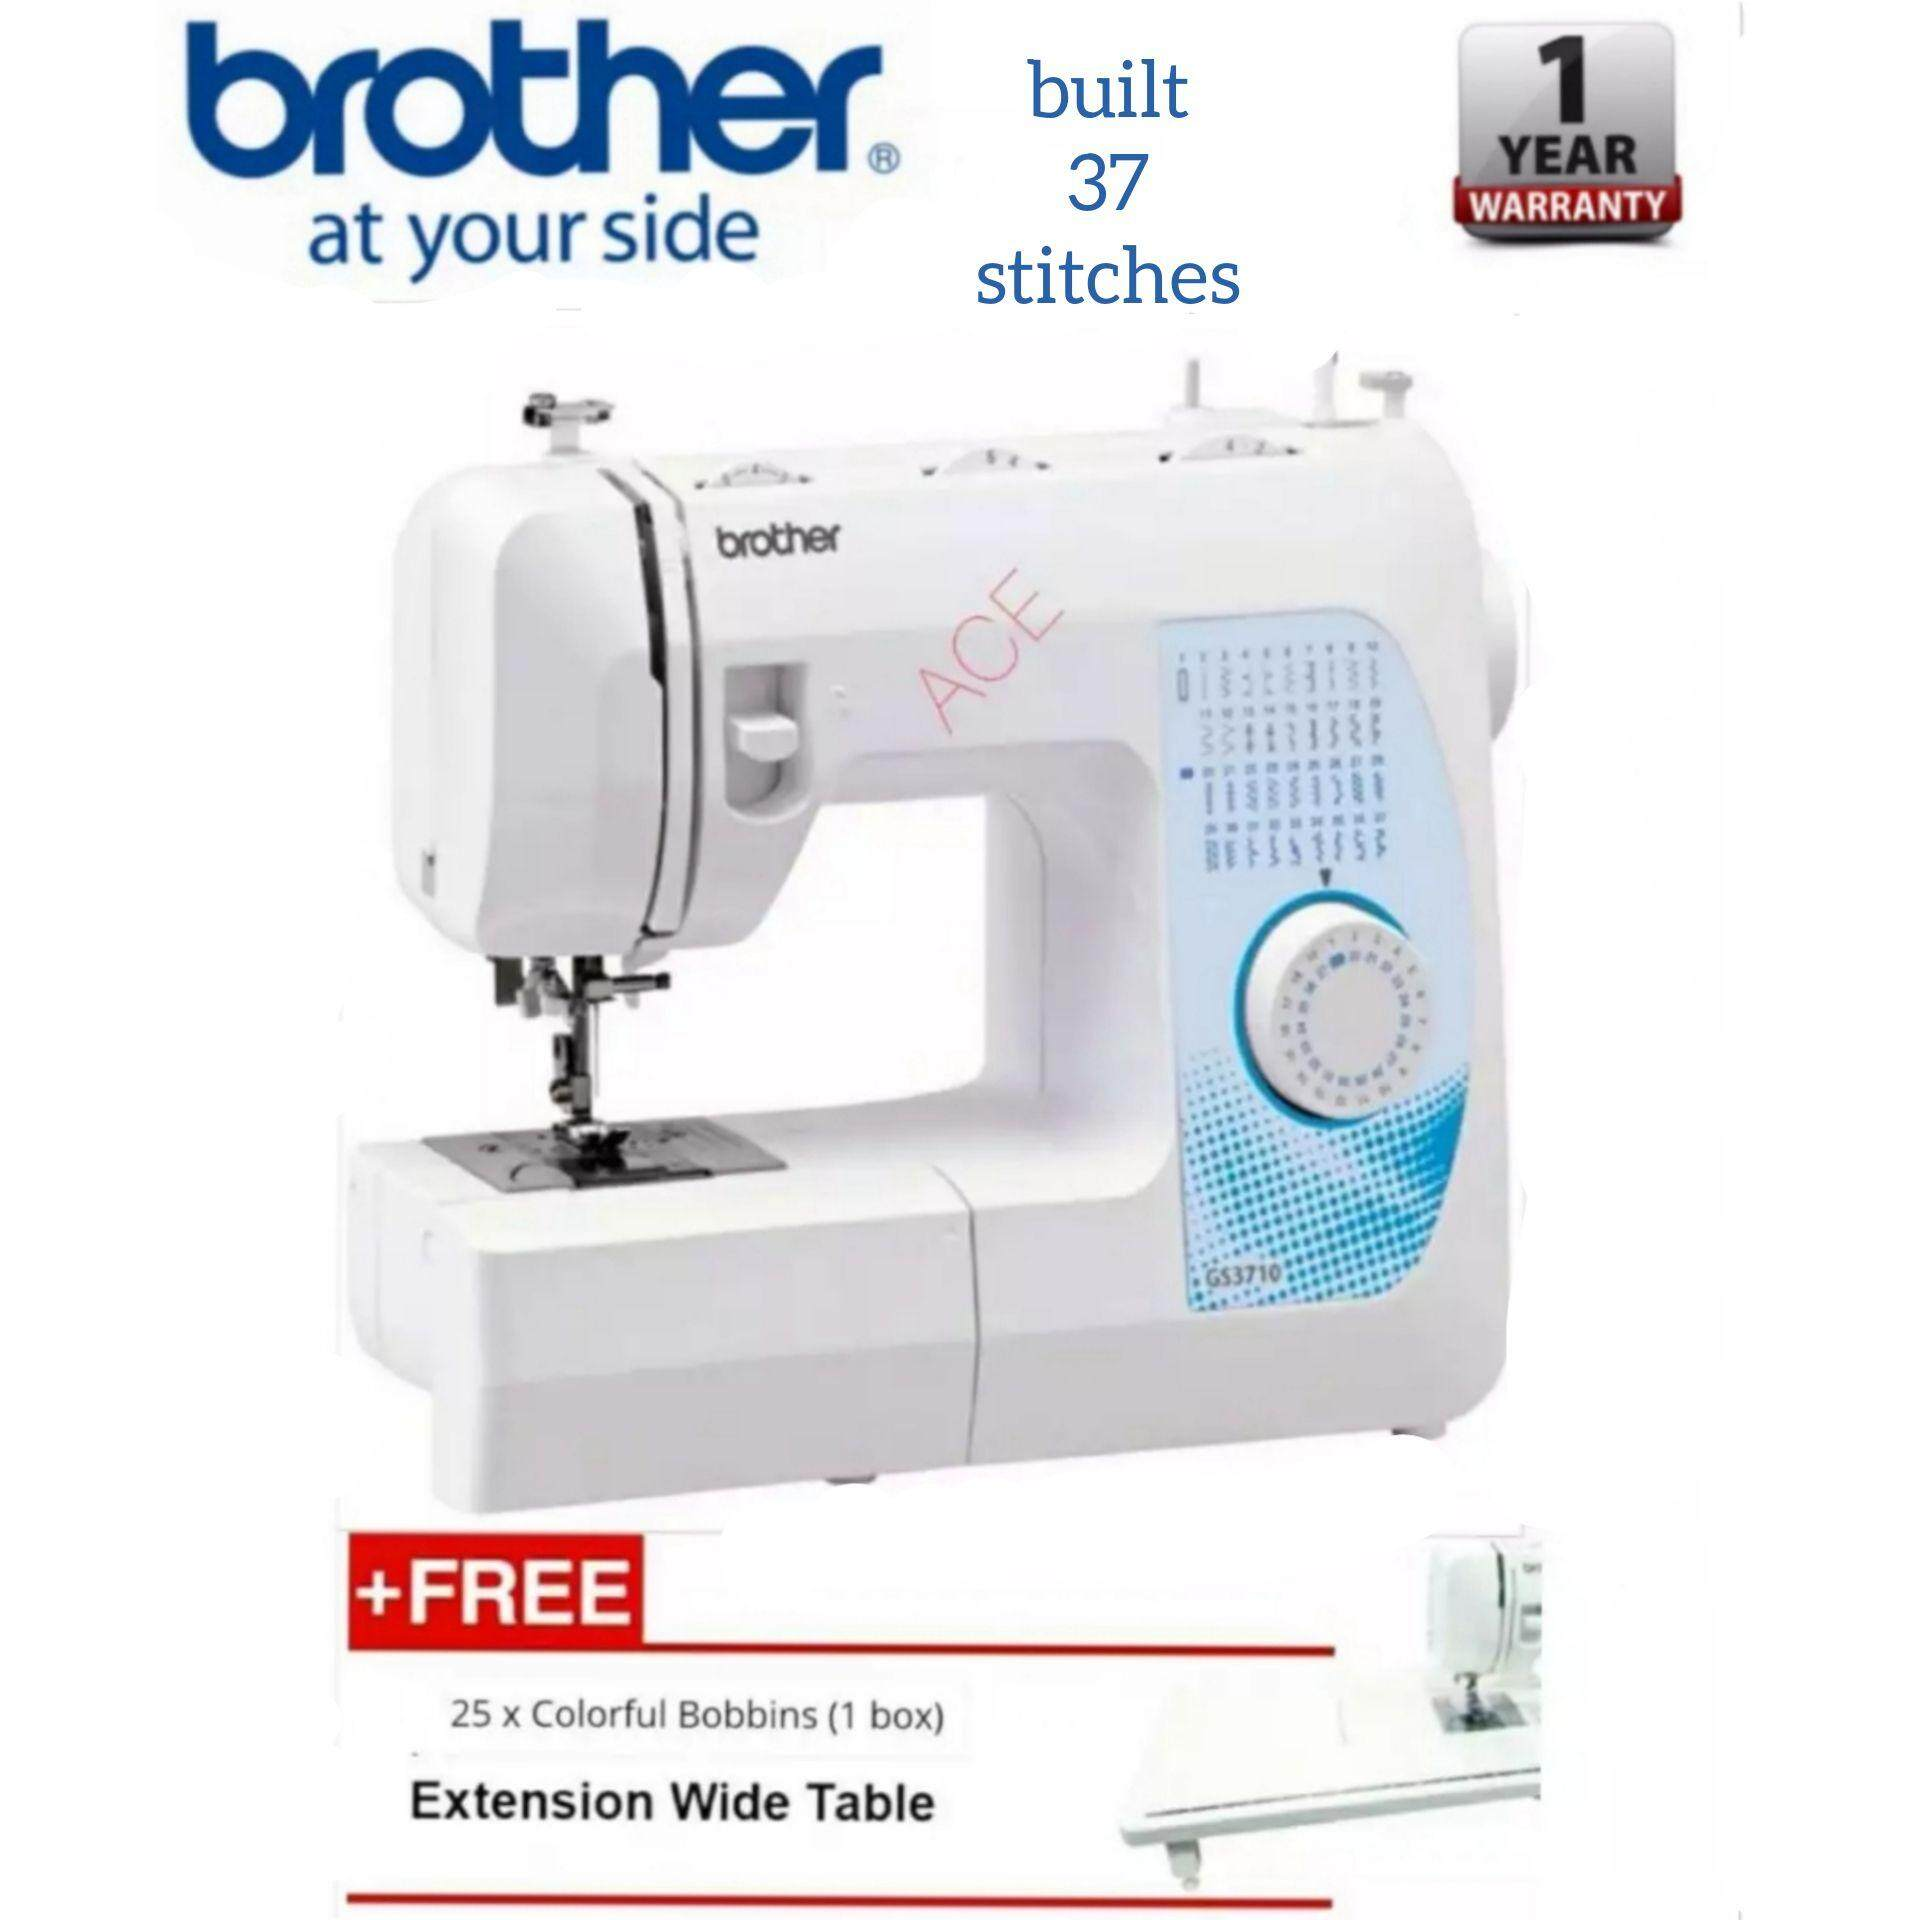 Brother Sewing Machines Price In Malaysia Best Ja1450nt Portable Machine Mesin Jahit Ja 1450nt Gs3710 Free Extension Table 25 Colorful Bobbins